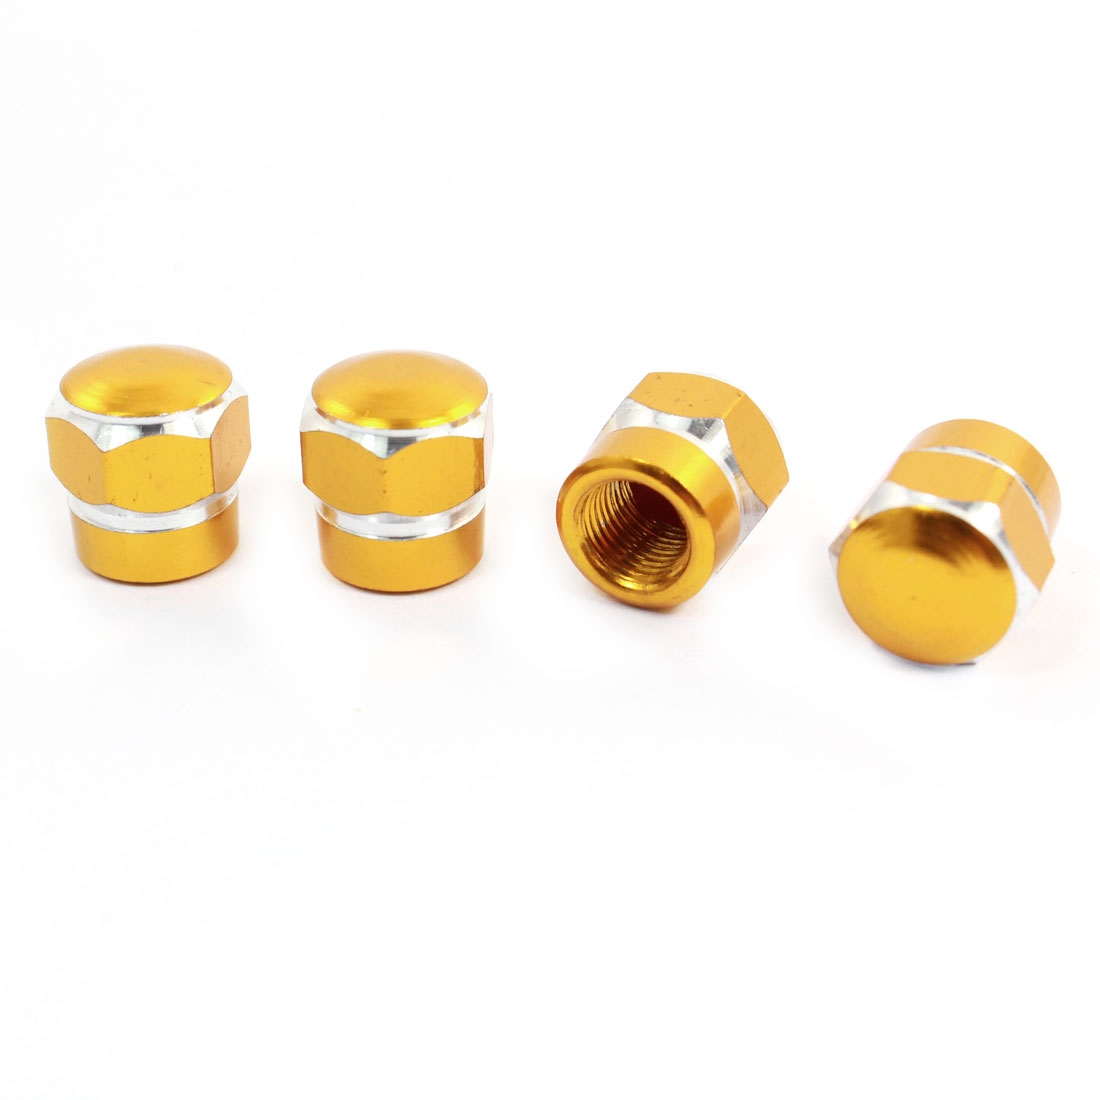 4 Pcs Gold Tone Car Hex Metal Tyre Tire Valve Stem Decorative Dust Cap Cover